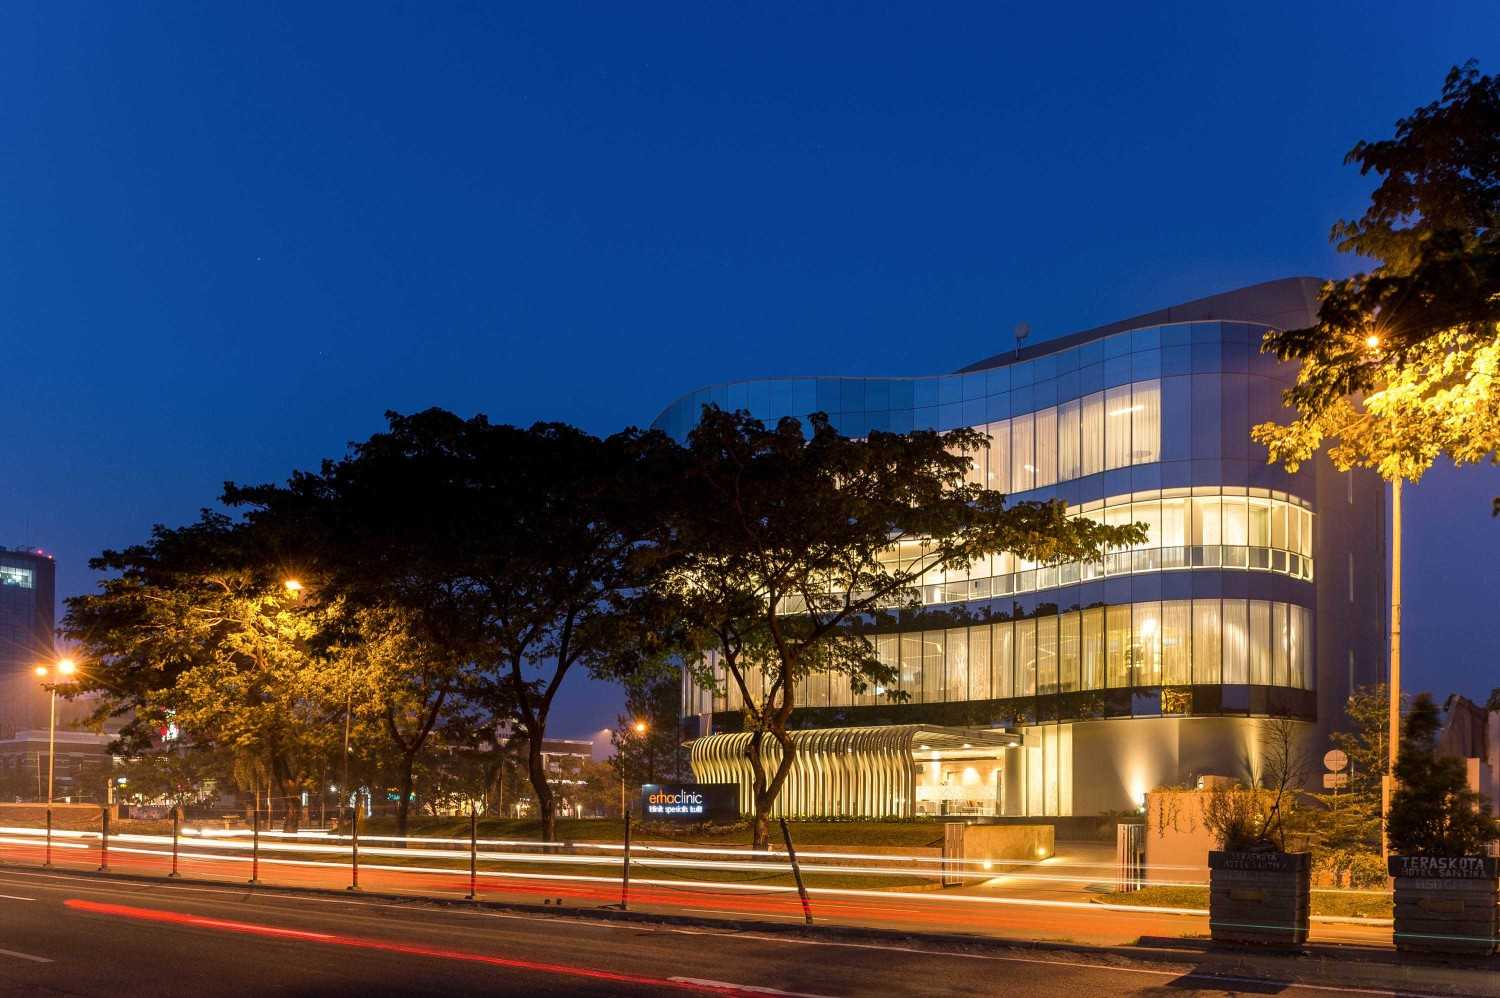 Hmparchitects Eau Building  Bsd Bsd Night View  18807